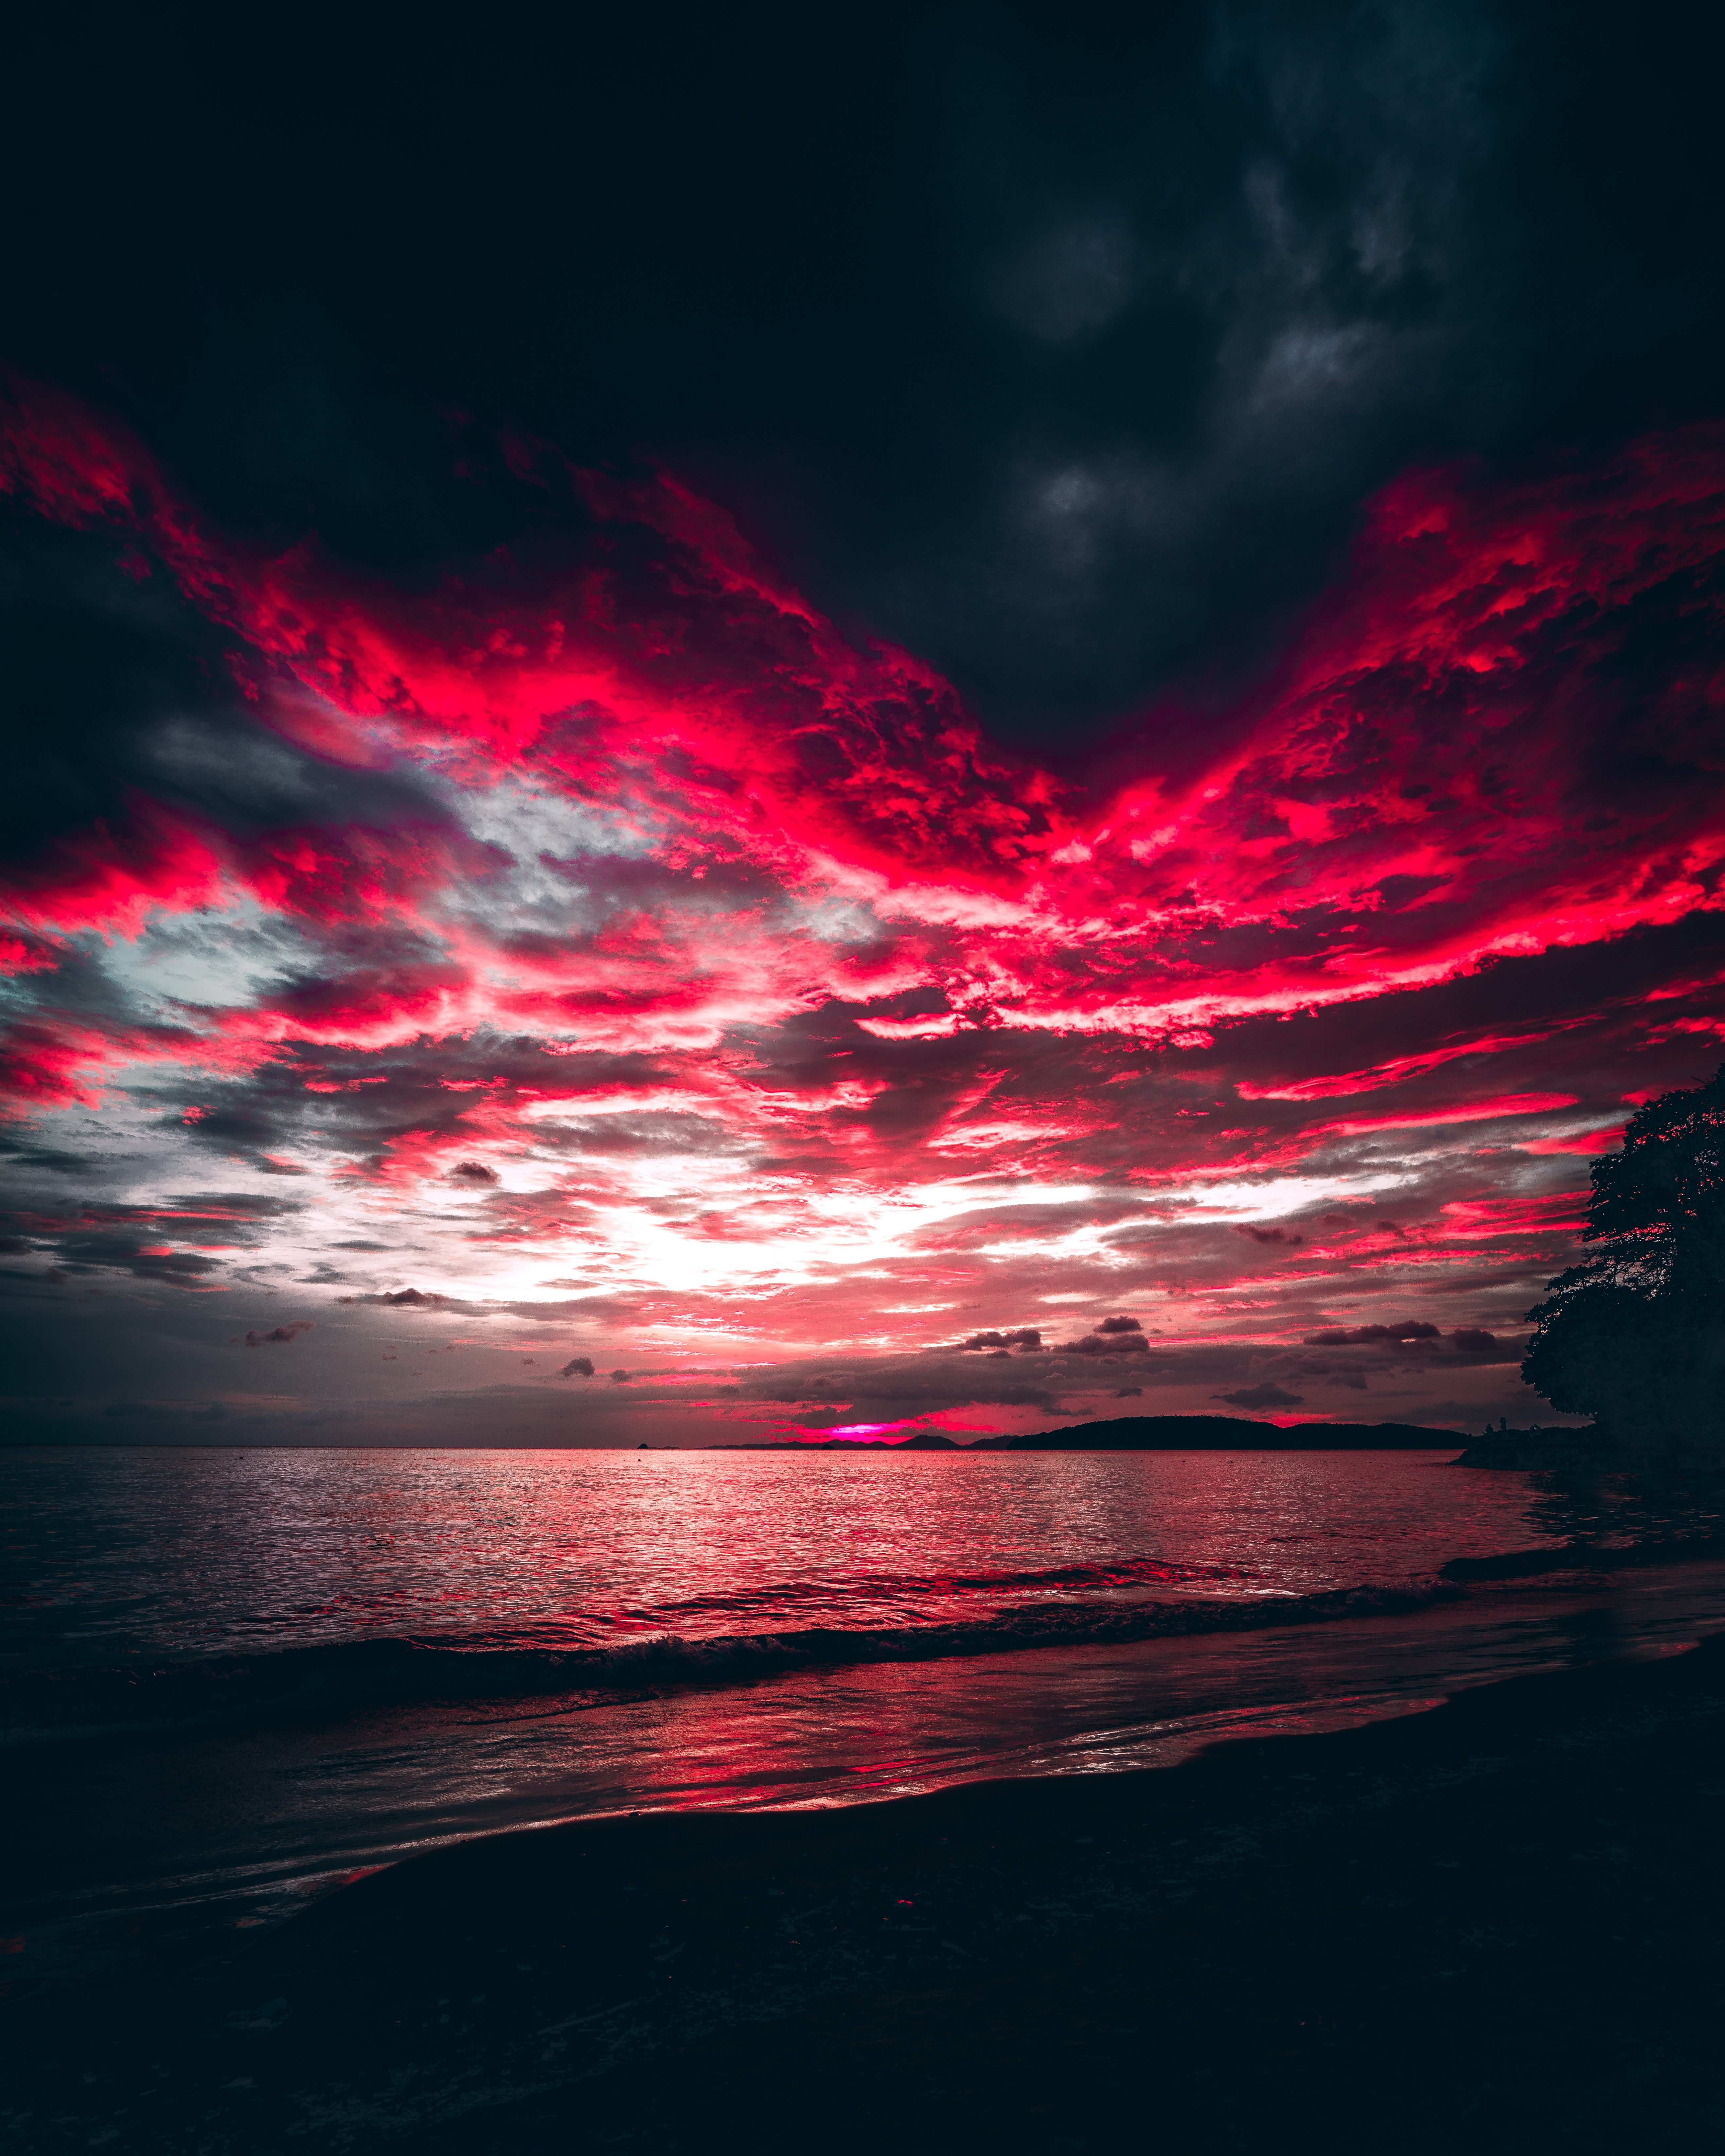 75819 download wallpaper Night, Nature, Sunset, Sea, Clouds, Shore, Bank screensavers and pictures for free